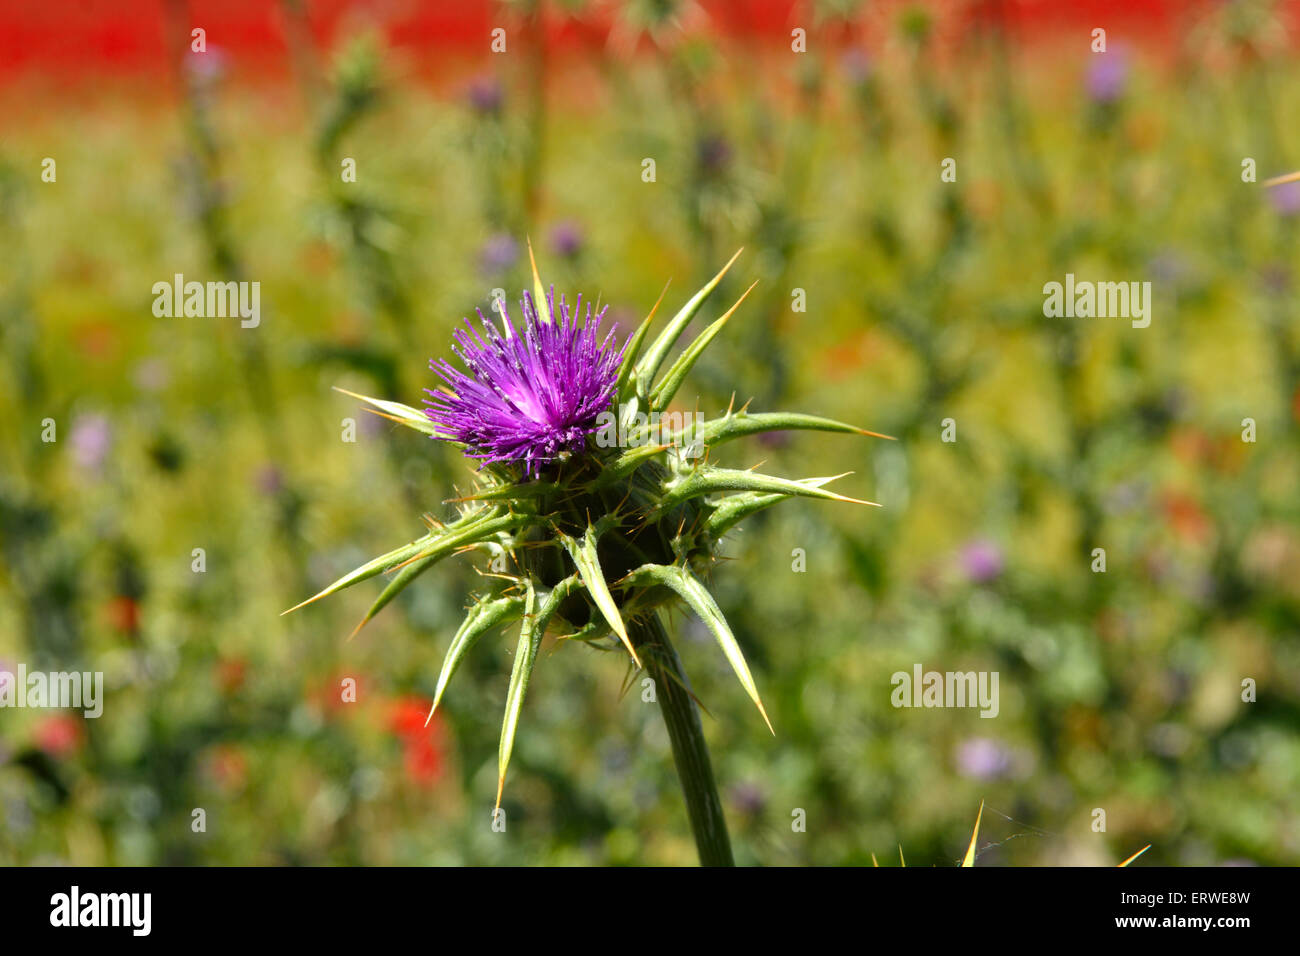 Milk thistle Silybum marianum flower in bloom - Stock Image